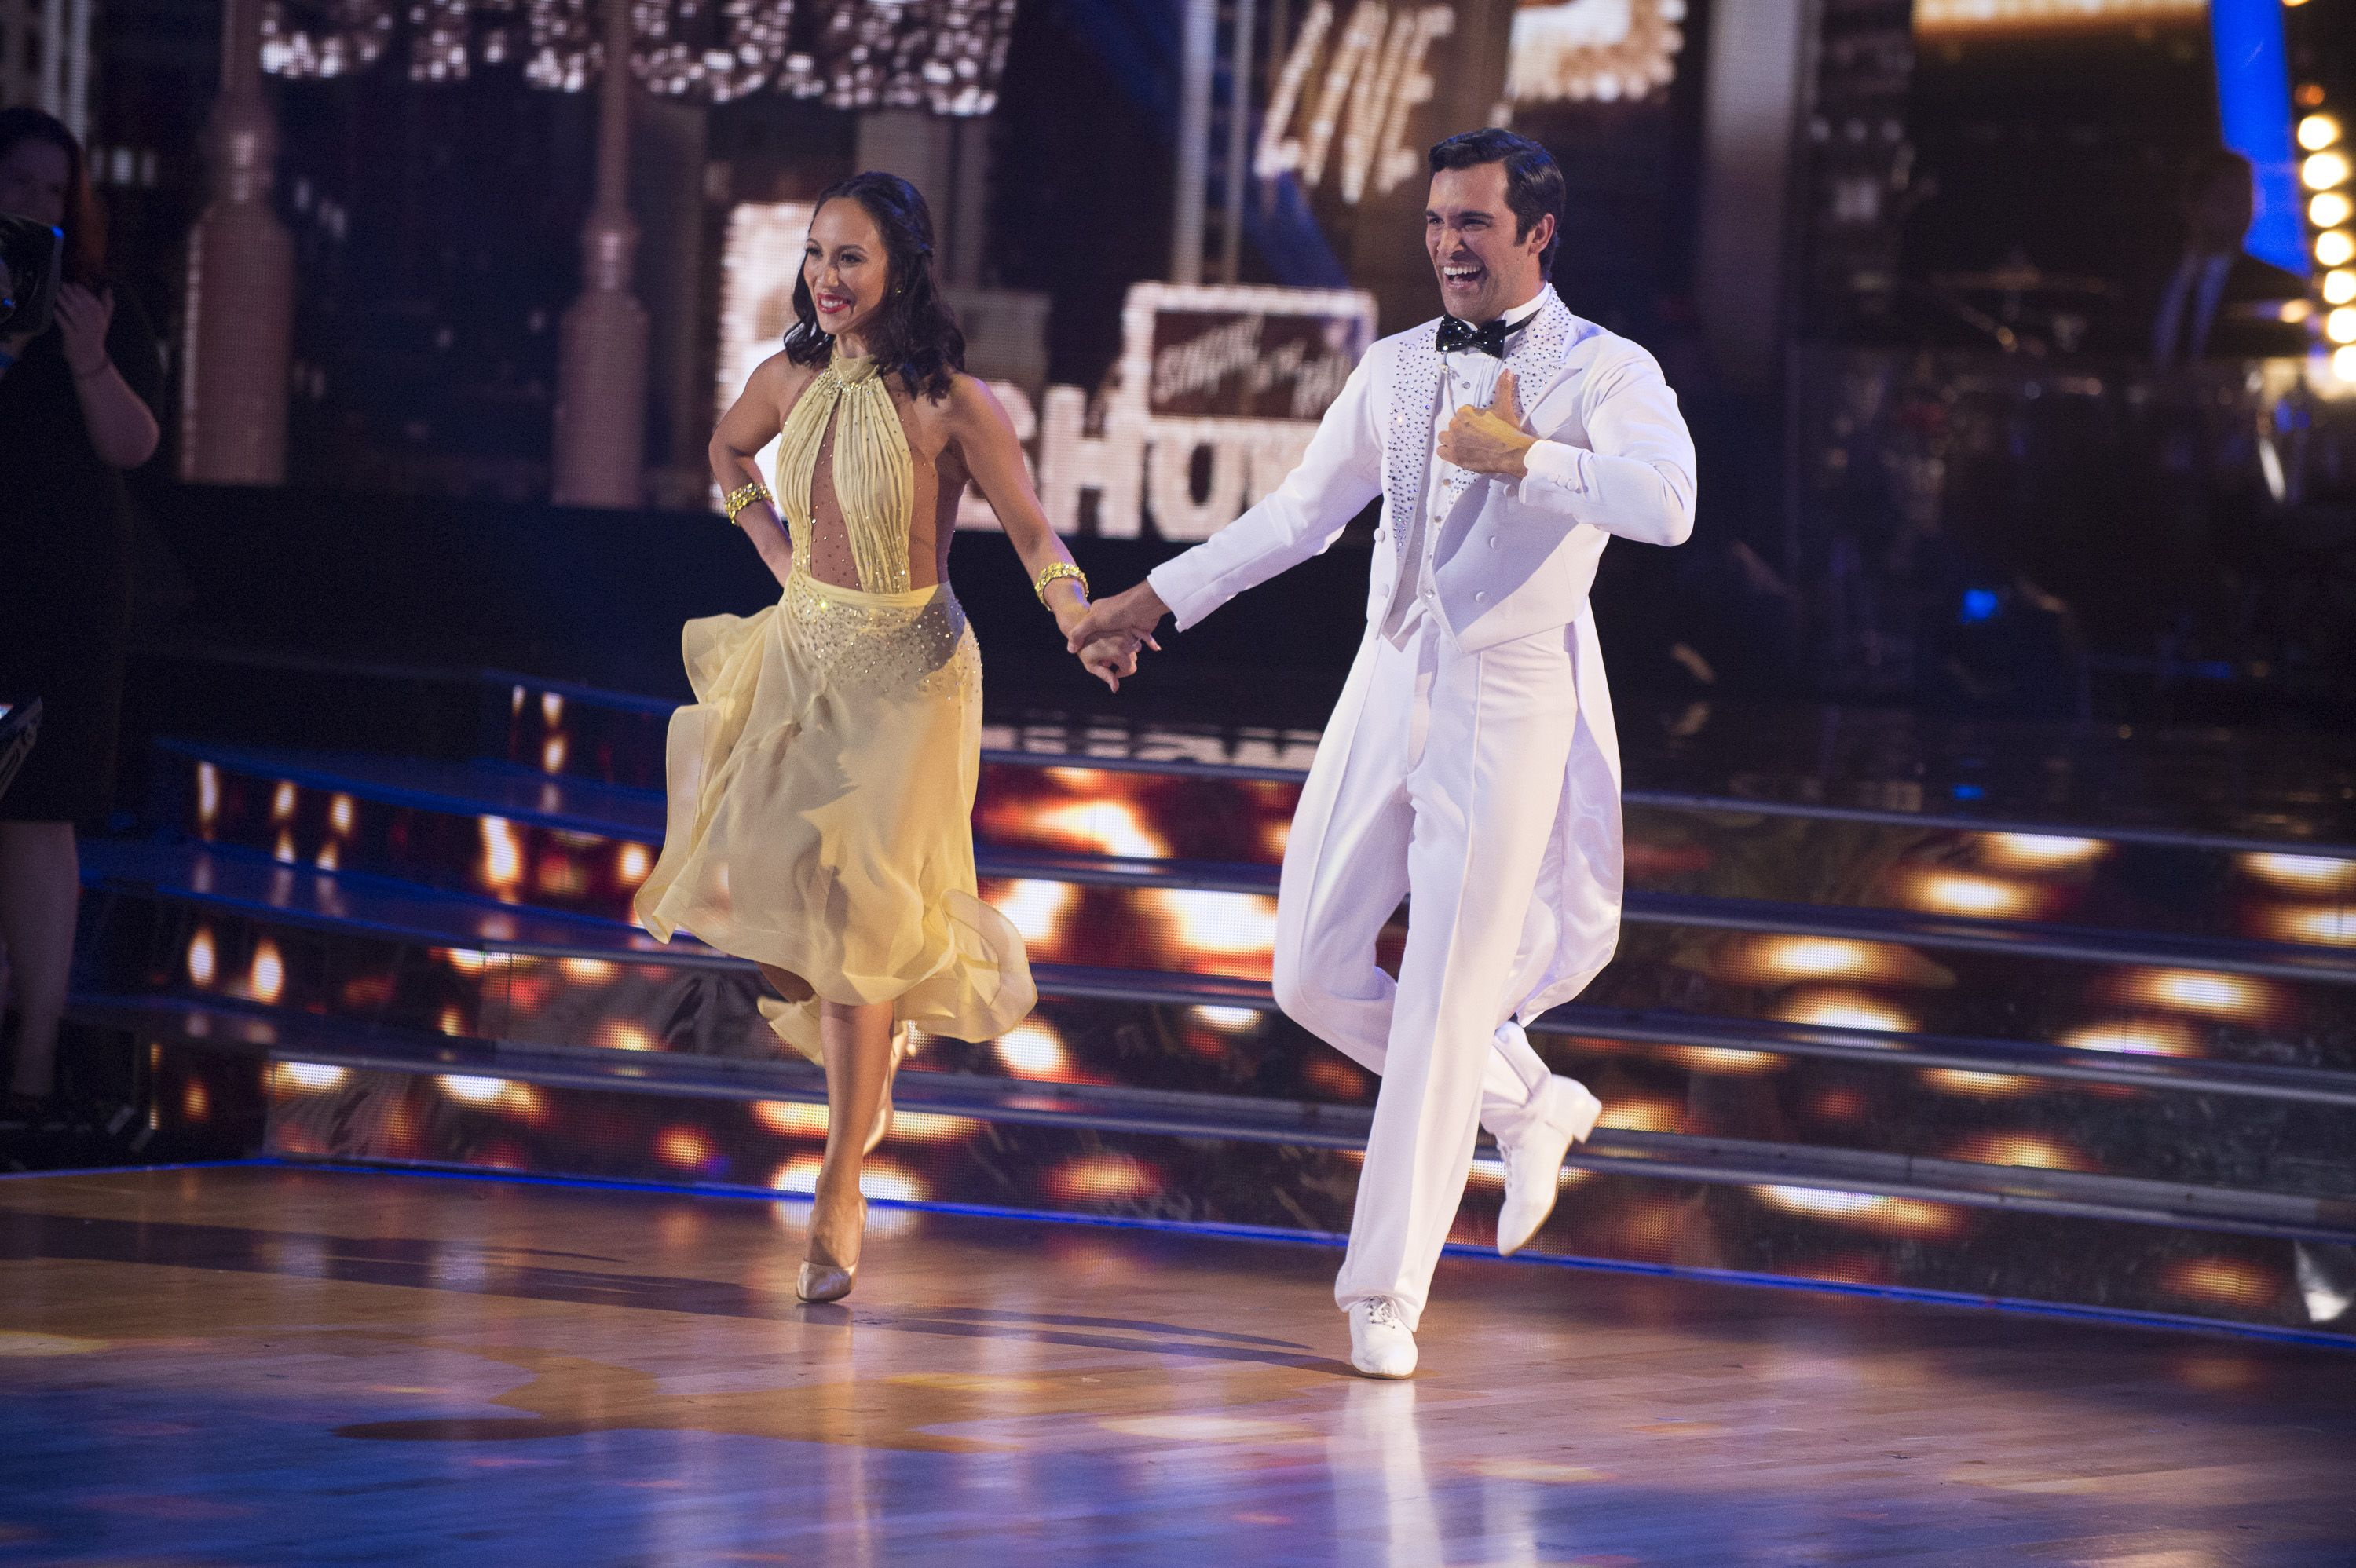 dancing with the stars juan pablo di pace has an incredible singing